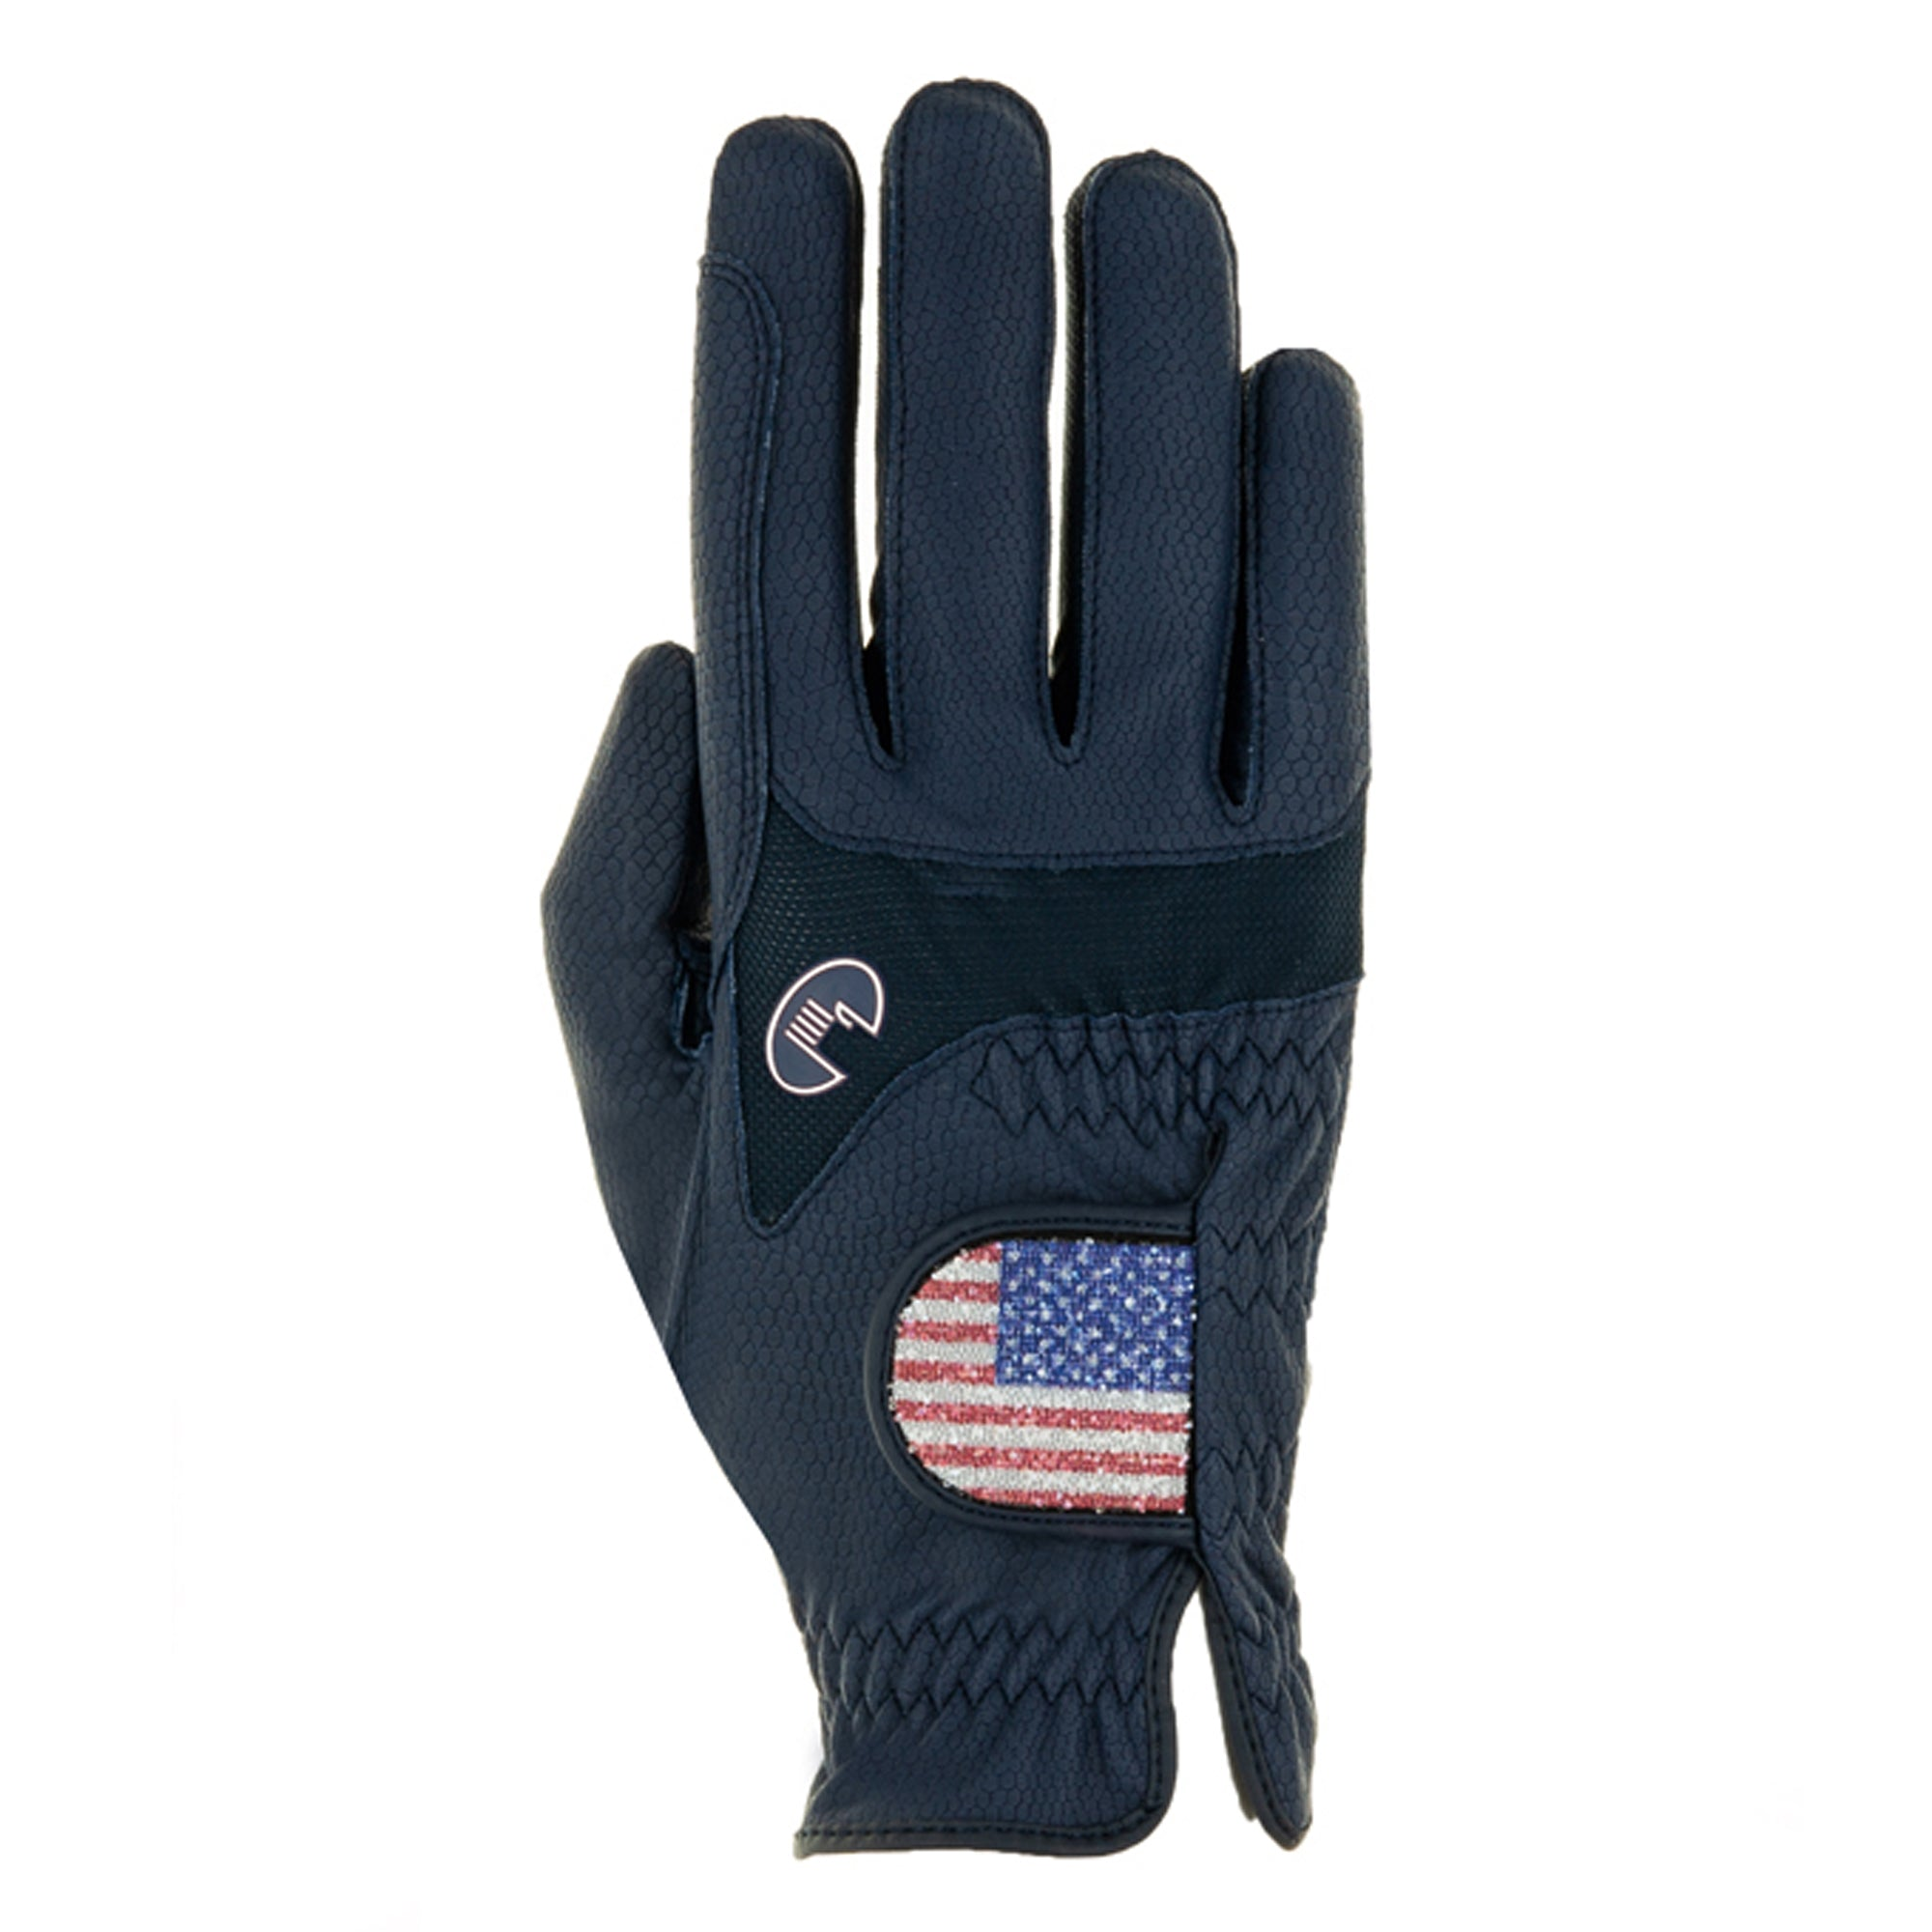 Roeckl Maryland Riding Glove - Unisex